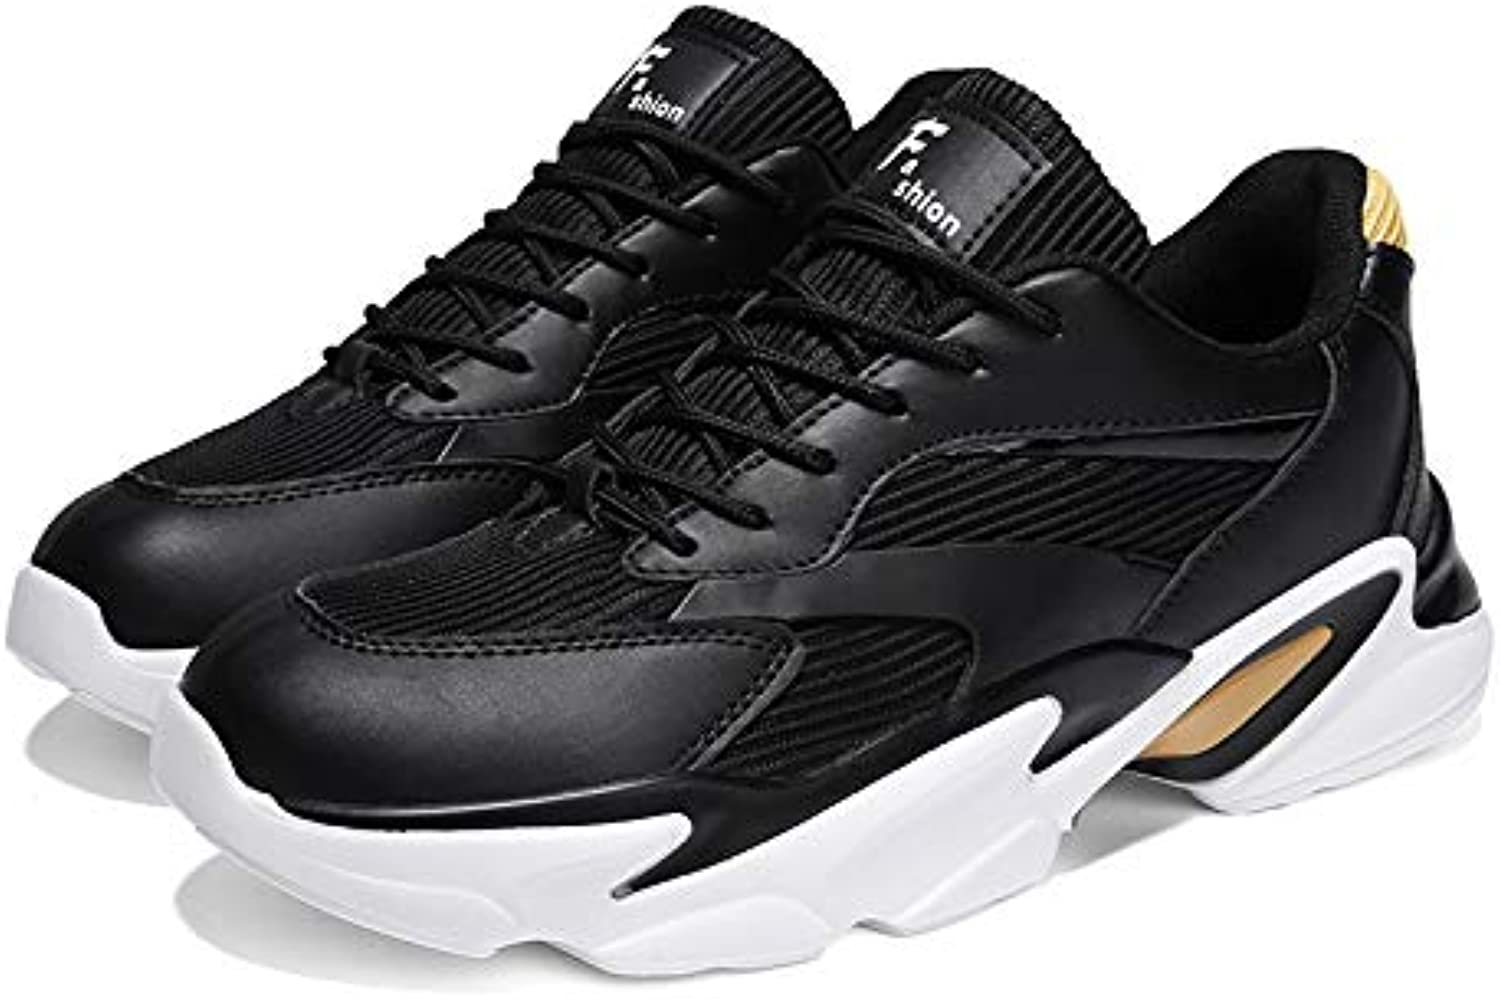 HAWEEL Casual Sports shoes Fashion Round Head Casual Outdoor Sport Running shoes for Men (color Black Size 39)